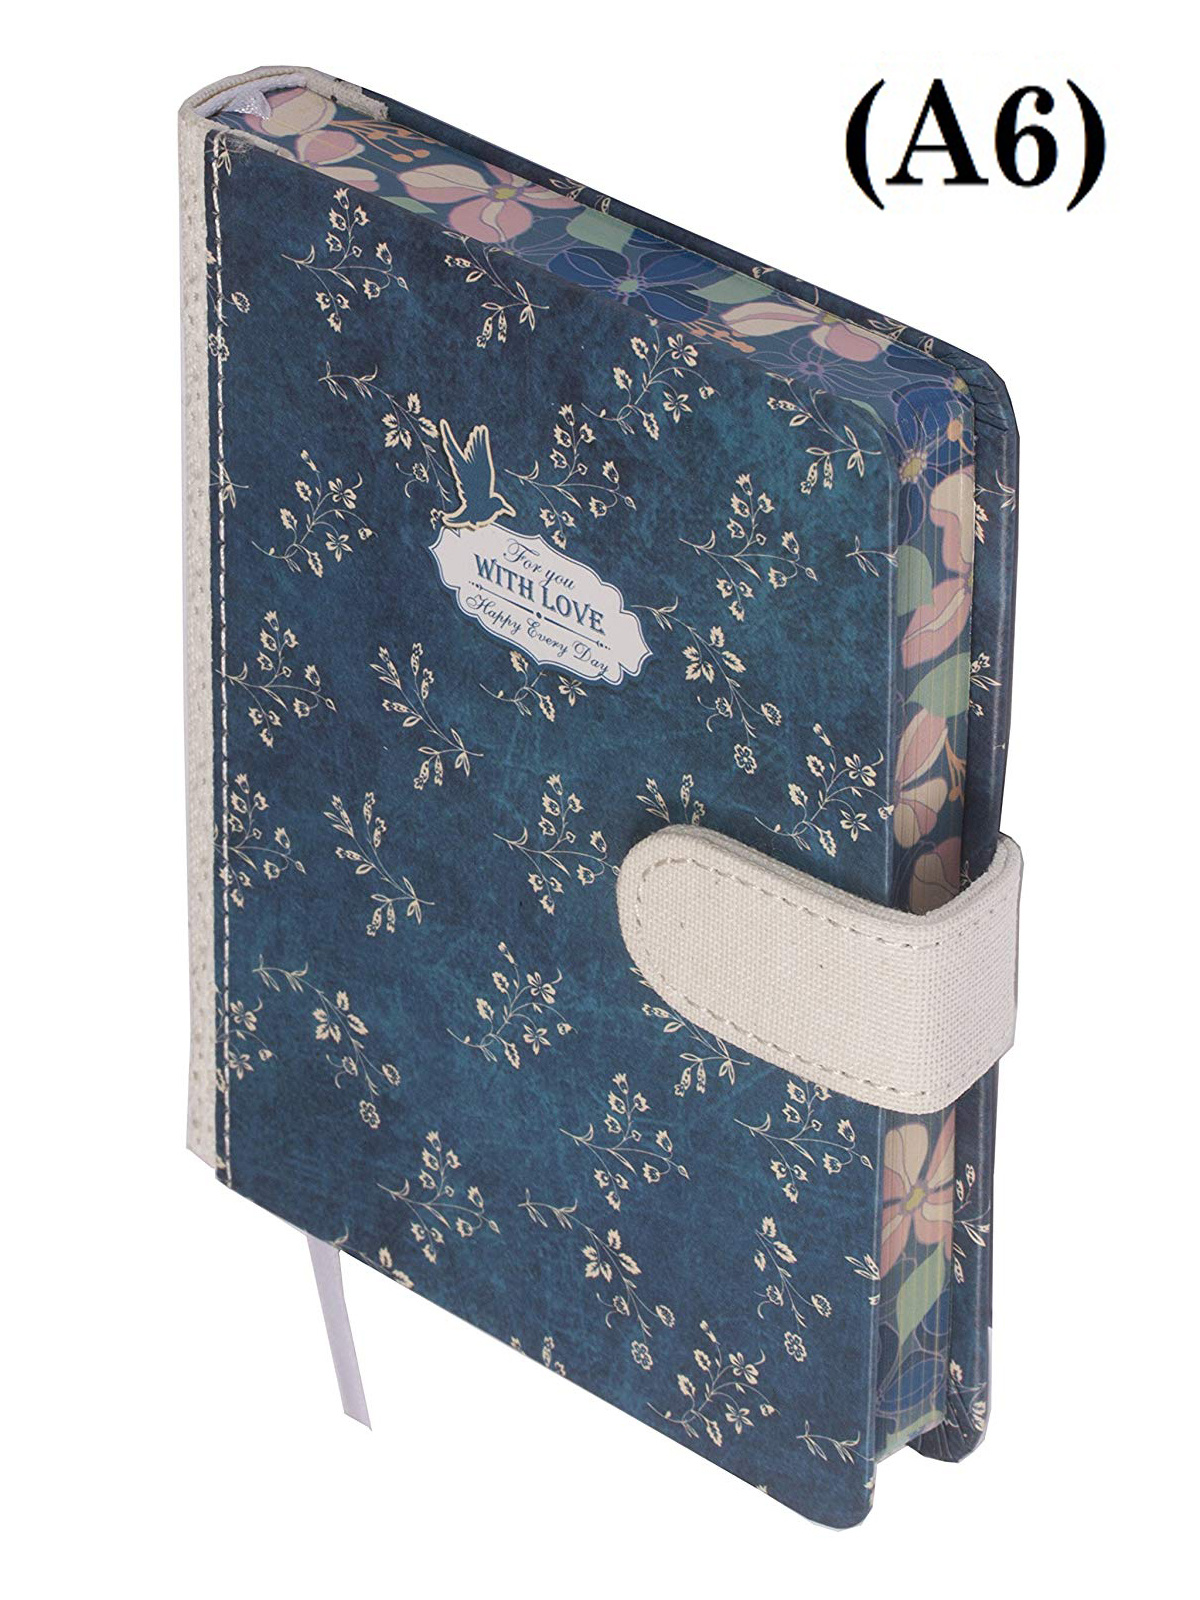 Dreamnotes D1311 Kalpa A6 Dreamnote Notebook Organiser Office Diary Home Planner With Love, 128 Pages - 10.5 x 15 cm - Blue